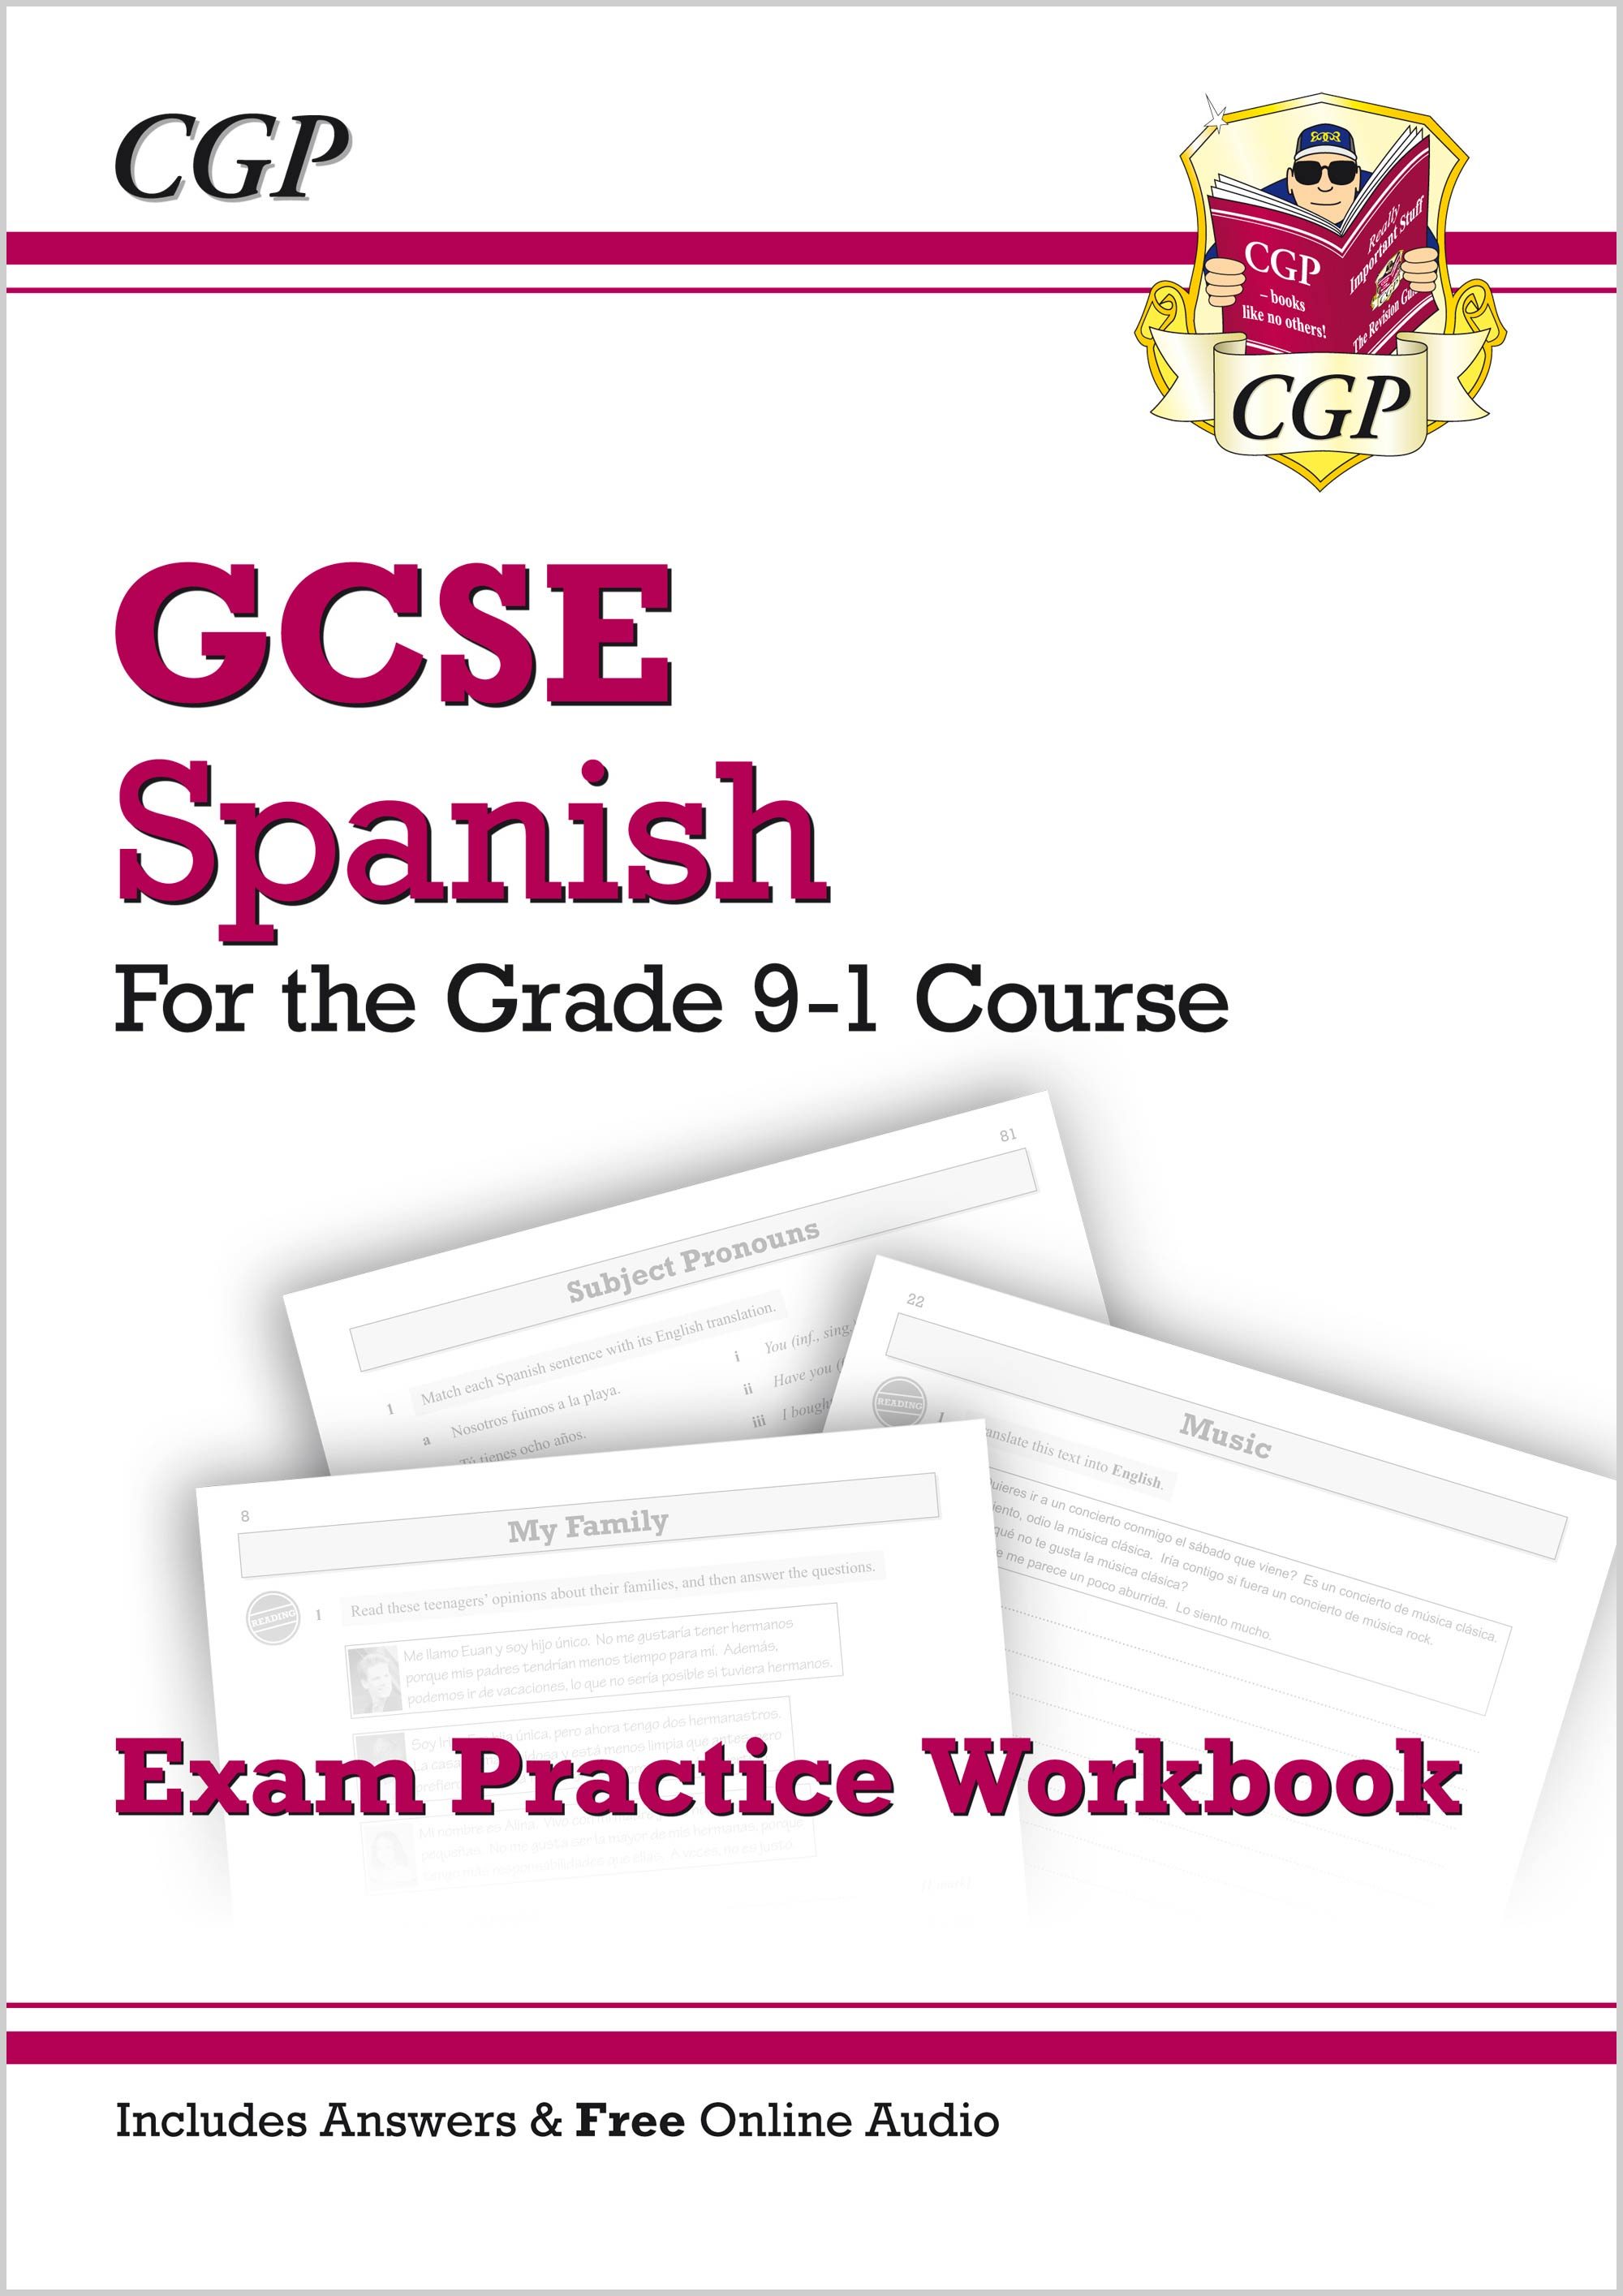 SPHQ41 - GCSE Spanish Exam Practice Workbook - for the Grade 9-1 Course (includes Answers)